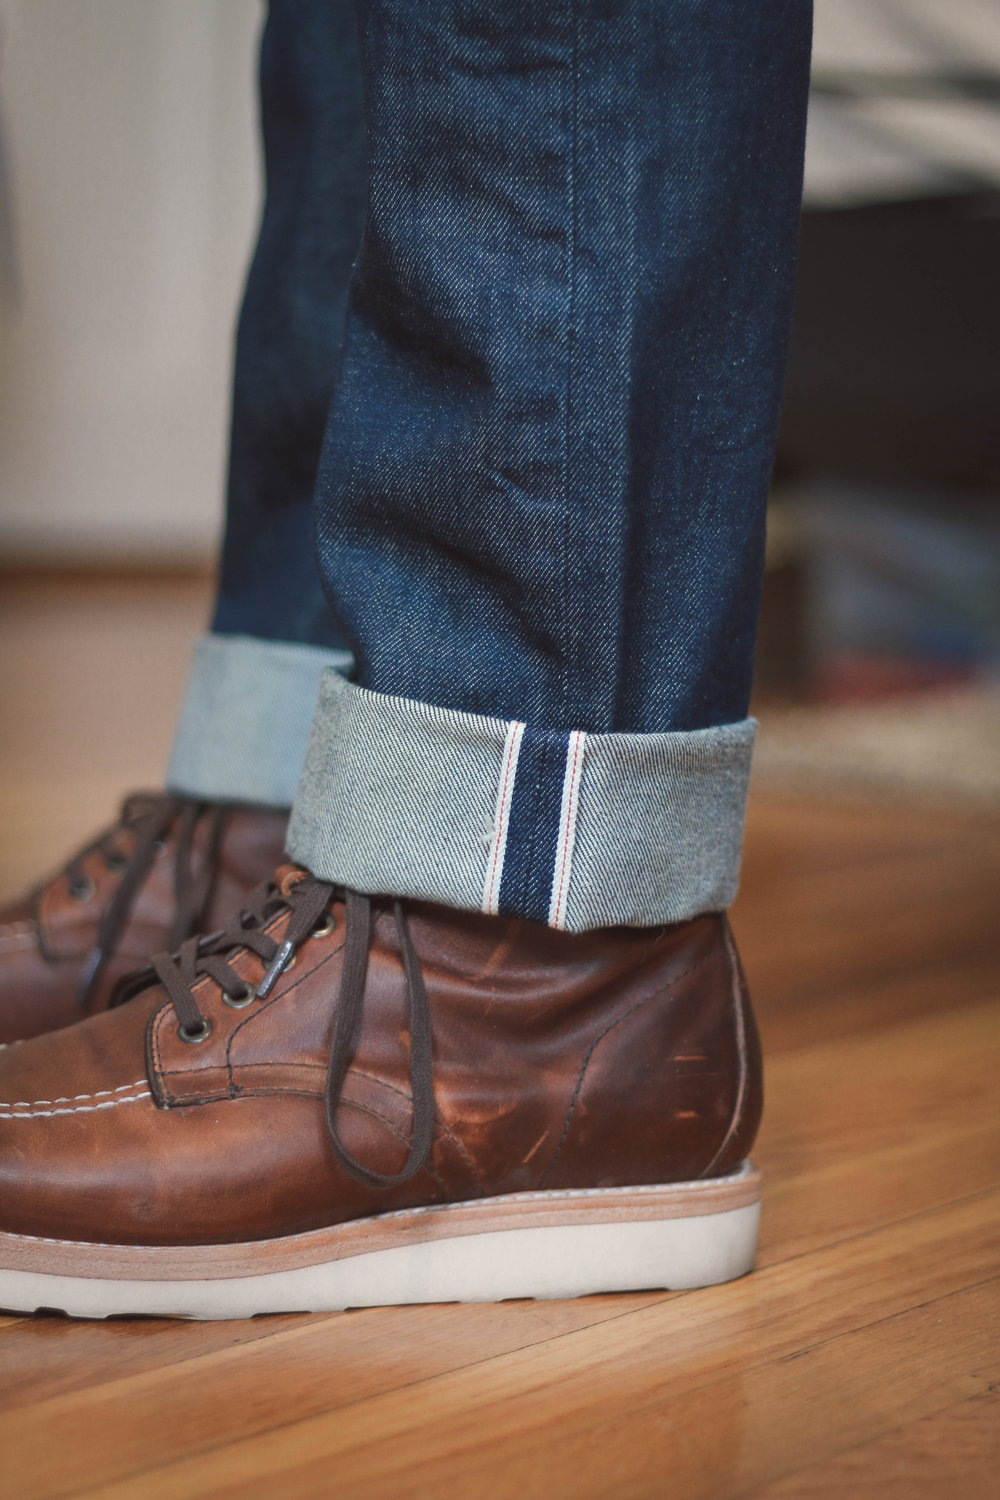 Made in USA Levi's jeans made from USA milled Cone Denim (now discontinued)in the 511 slim fit